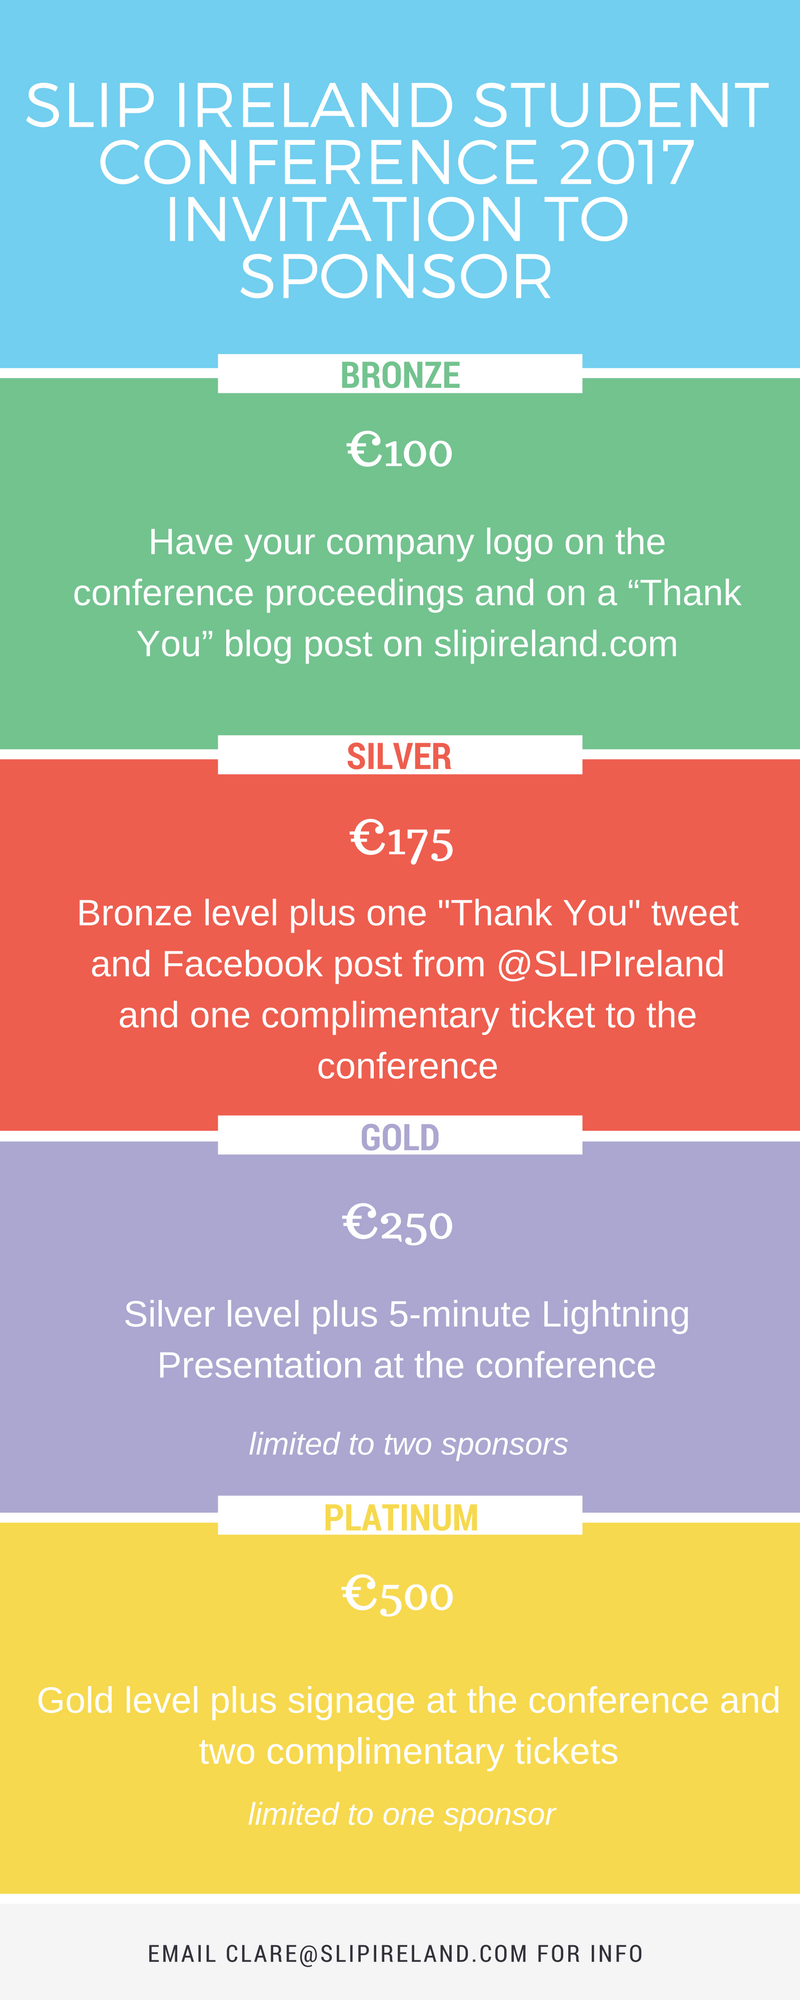 "SLIP Ireland Conference 2017 Invitation to Sponsor. Bronze €100 Have your company logo on the conference proceedings and on a ""Thank You"" blog post on slipireland.com. Silver €175 Bronze level plus one ""Thank You"" tweet and Facebook post from @SLIPIreland and one complimentary ticket to the conference. Gold €250 Silver level plus 5-minute Lightning Presentation at the conference. Limited to two sponsors. Platinum €500 Gold level plus signage at the conference and two complimentary tickets. Limited to one sponsor."